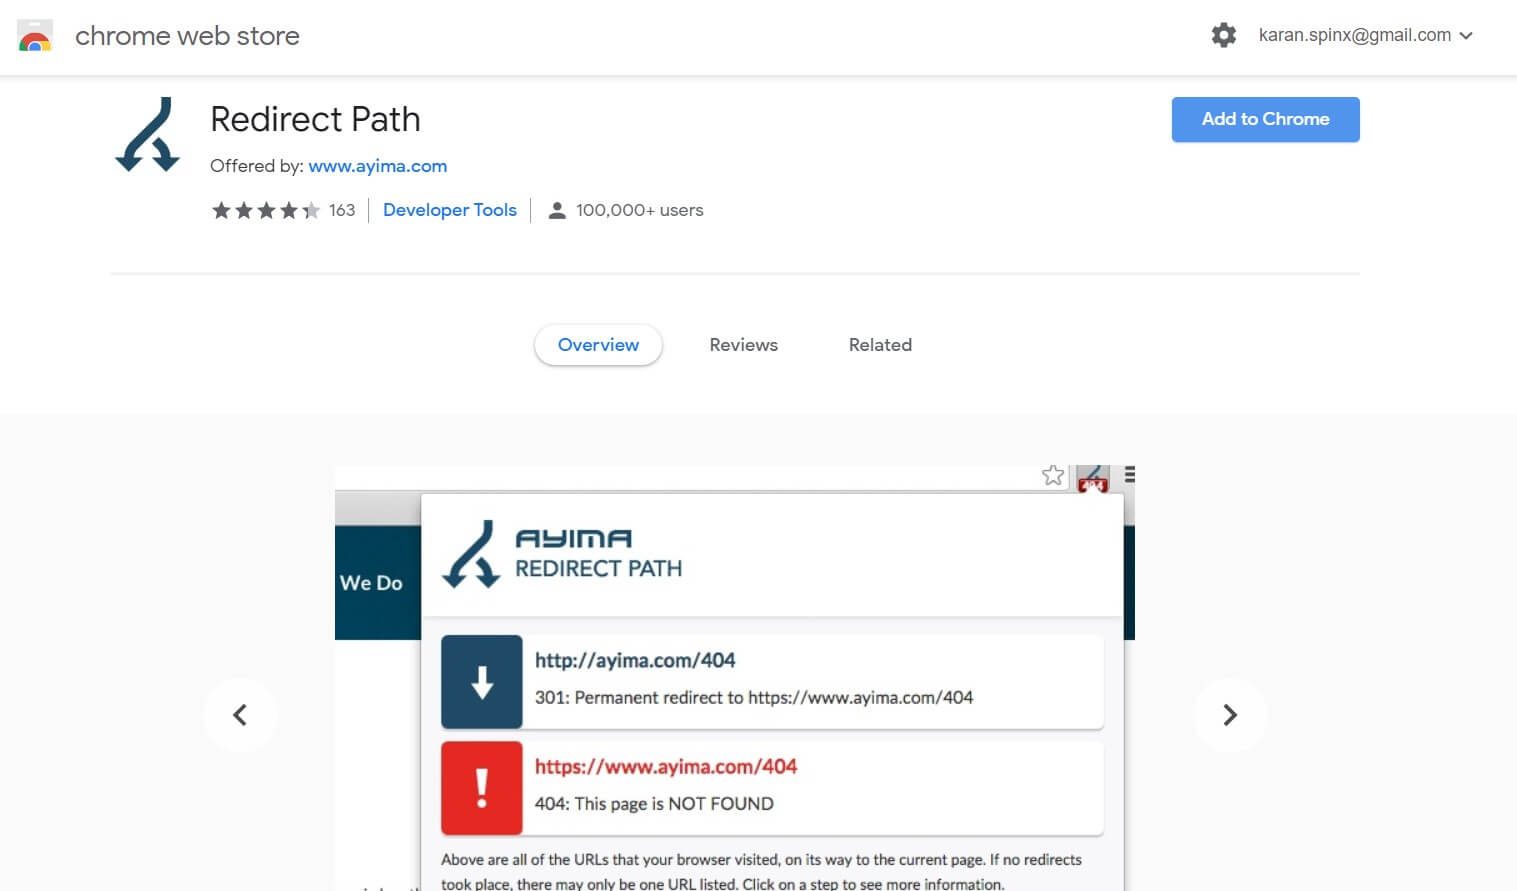 Redirect Path SEO Tool